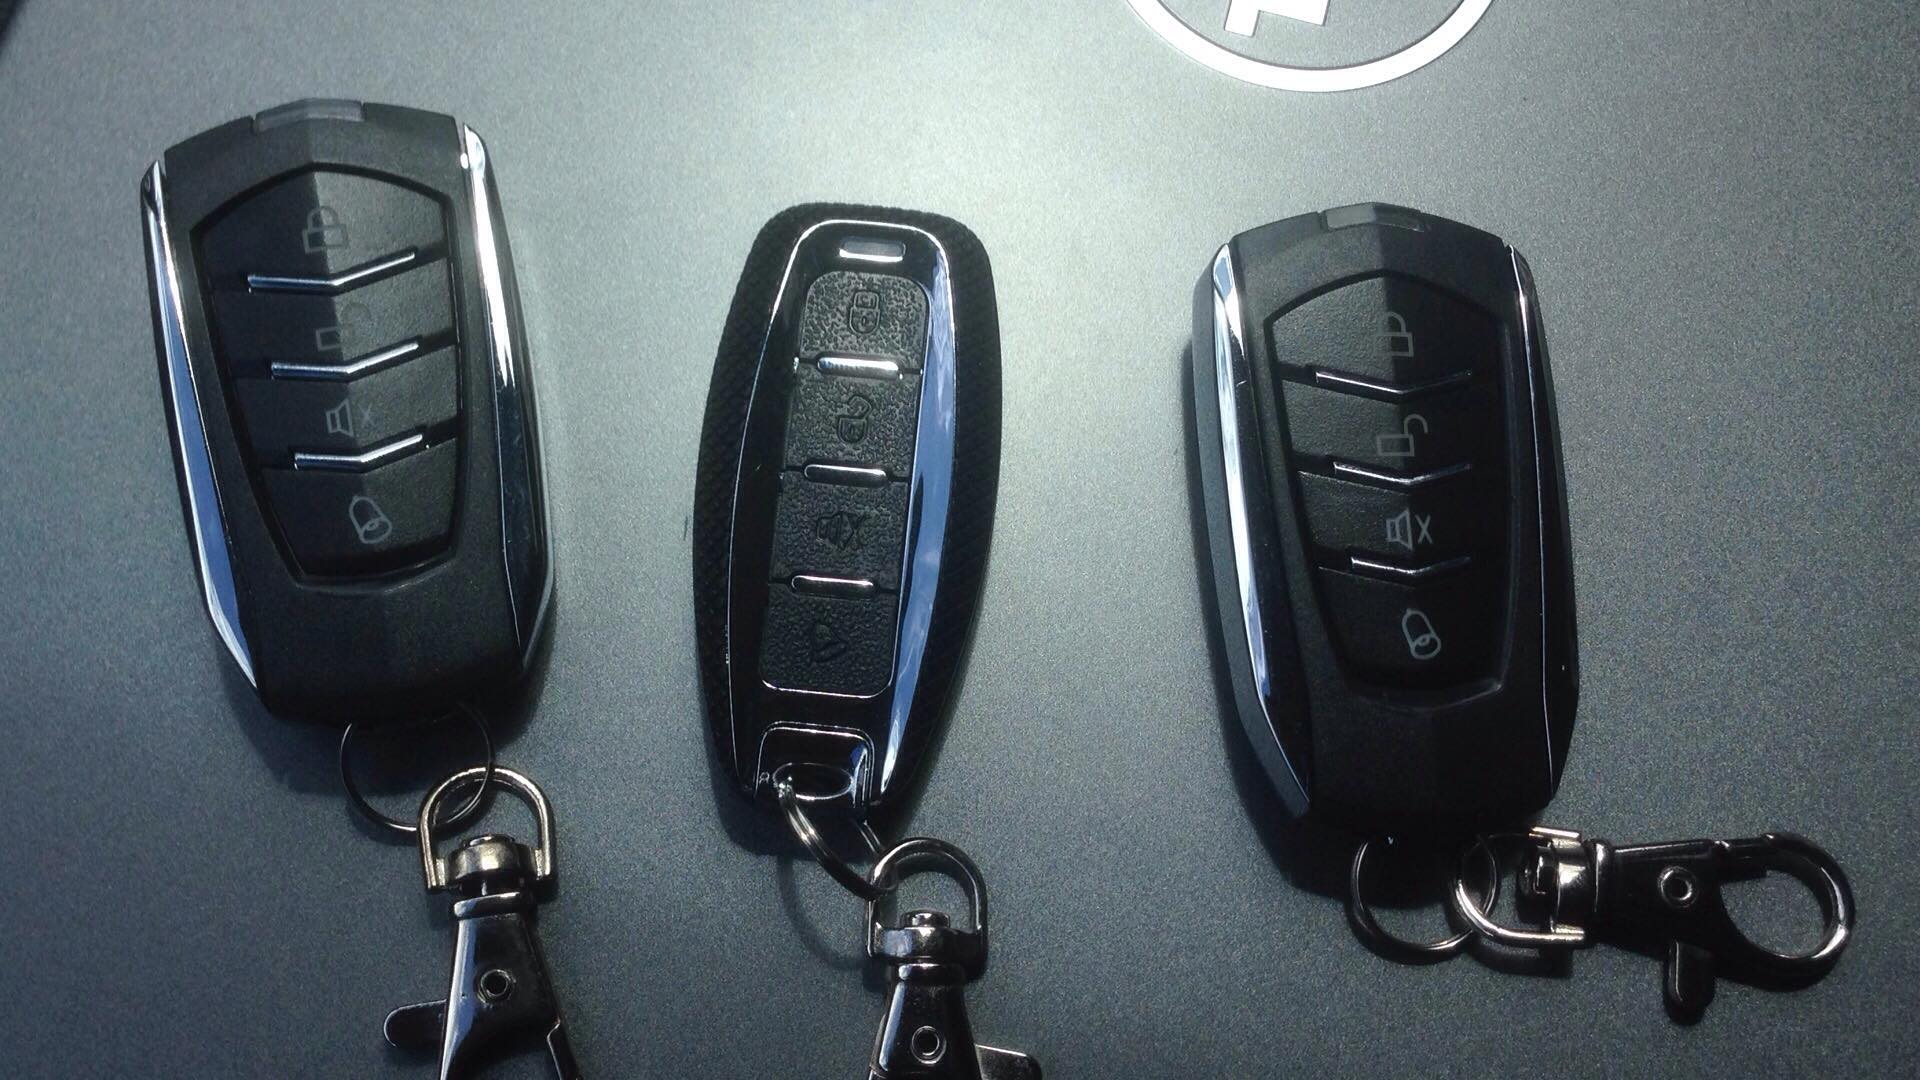 KEYLESS ENTRY REMOTE FOR ALL VEHICLES UPGRADE